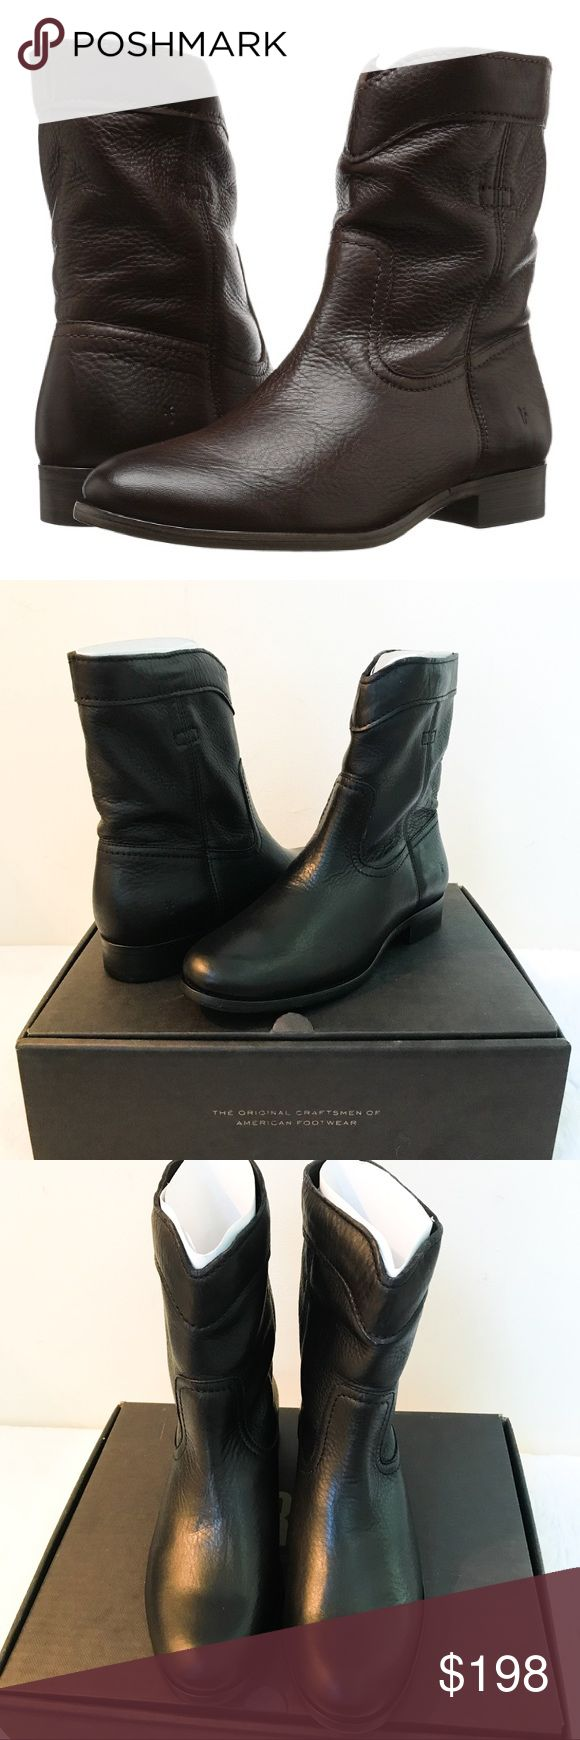 Frye Short Cara Black Leather Boots Reasonable offers welcome. Same or next day shipping. Brand new in box; retail at $328. Fall is coming - are you ready?! The Frye Cara Roper Short boot is made of a soft, pliable leather that can be worn up or softly scrunched down to fit your personal style. Soft pebble full grain leather upper. Curved topline. Unlined interior for a lightweight construction. Lightly cushioned leather footbed for added comfort. Chunky stacked heel. Durable rubber outsole…